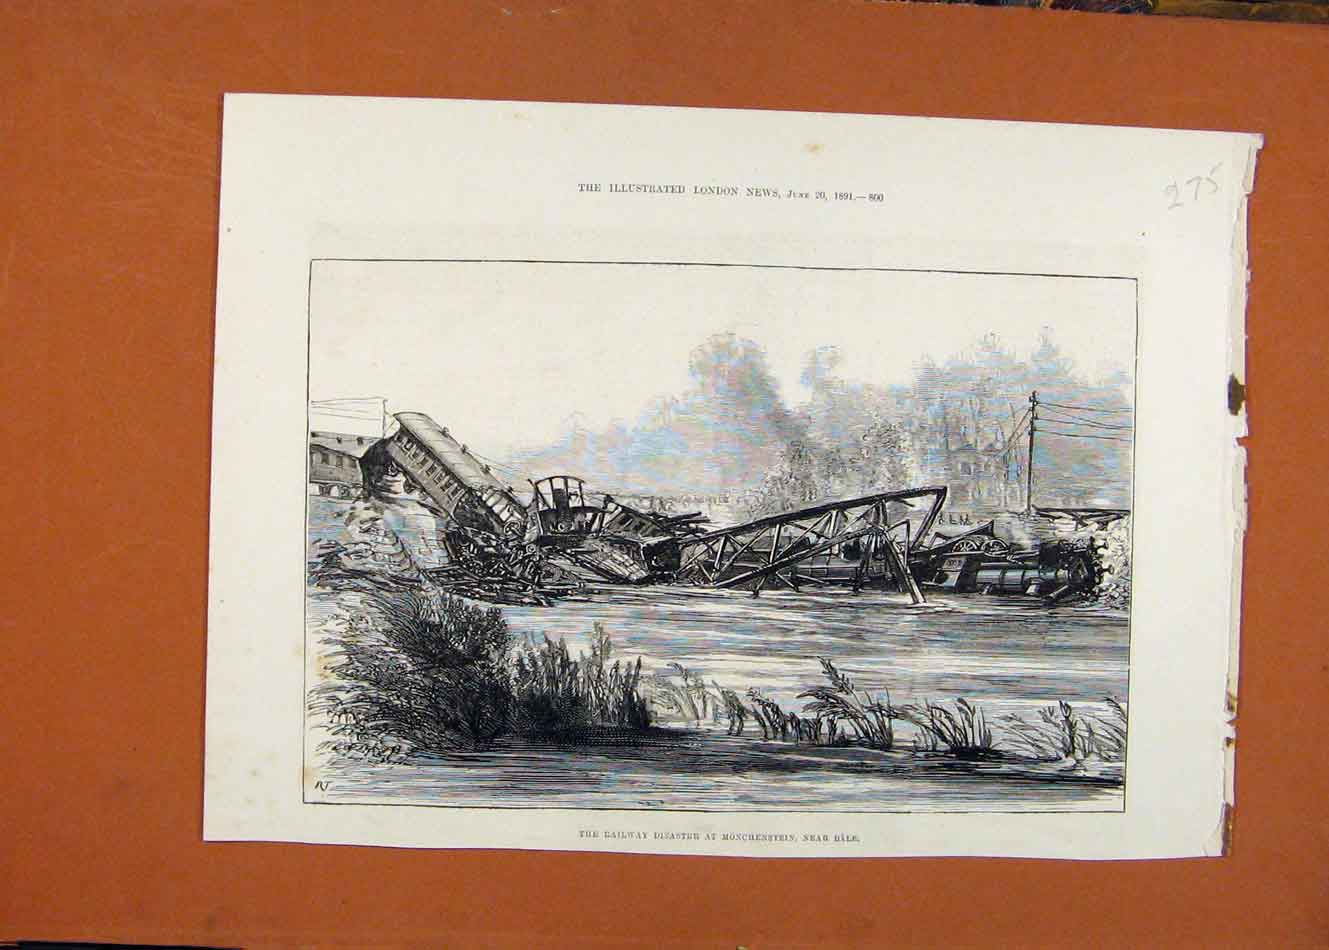 Print Railway Disaster Monchenstein Bale C1891 London News 758260 Old Original